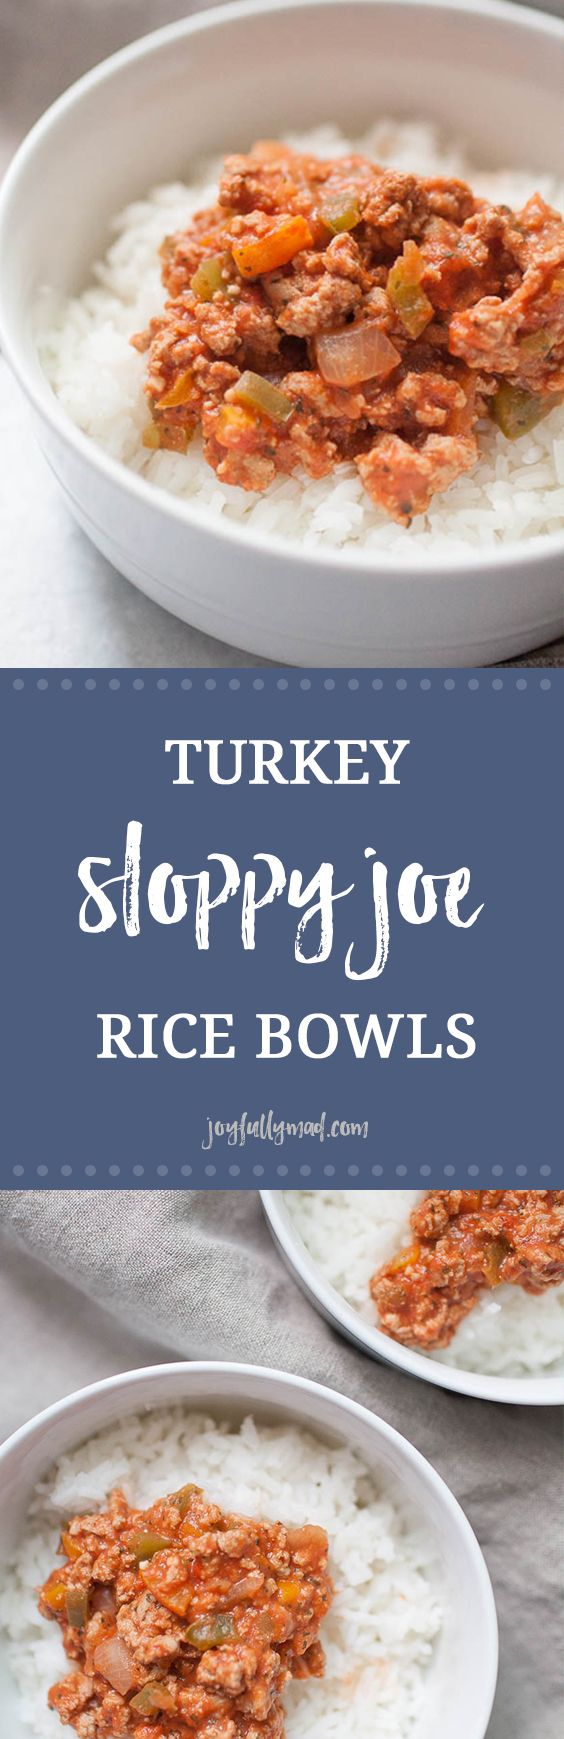 Looking for a gluten free, healthy sloppy joe recipe for the whole family? These Turkey Sloppy Joe Rice Bowls are made from scratch, so there is no added sugar or extra ingredients, only the ingredients that add tons of flavor to this easy weeknight dinner! Ground turkey, green and orange bell peppers, onions and spices all served over a bed of white rice makes this a perfect family friendly healthy meal. via @joyfullymad